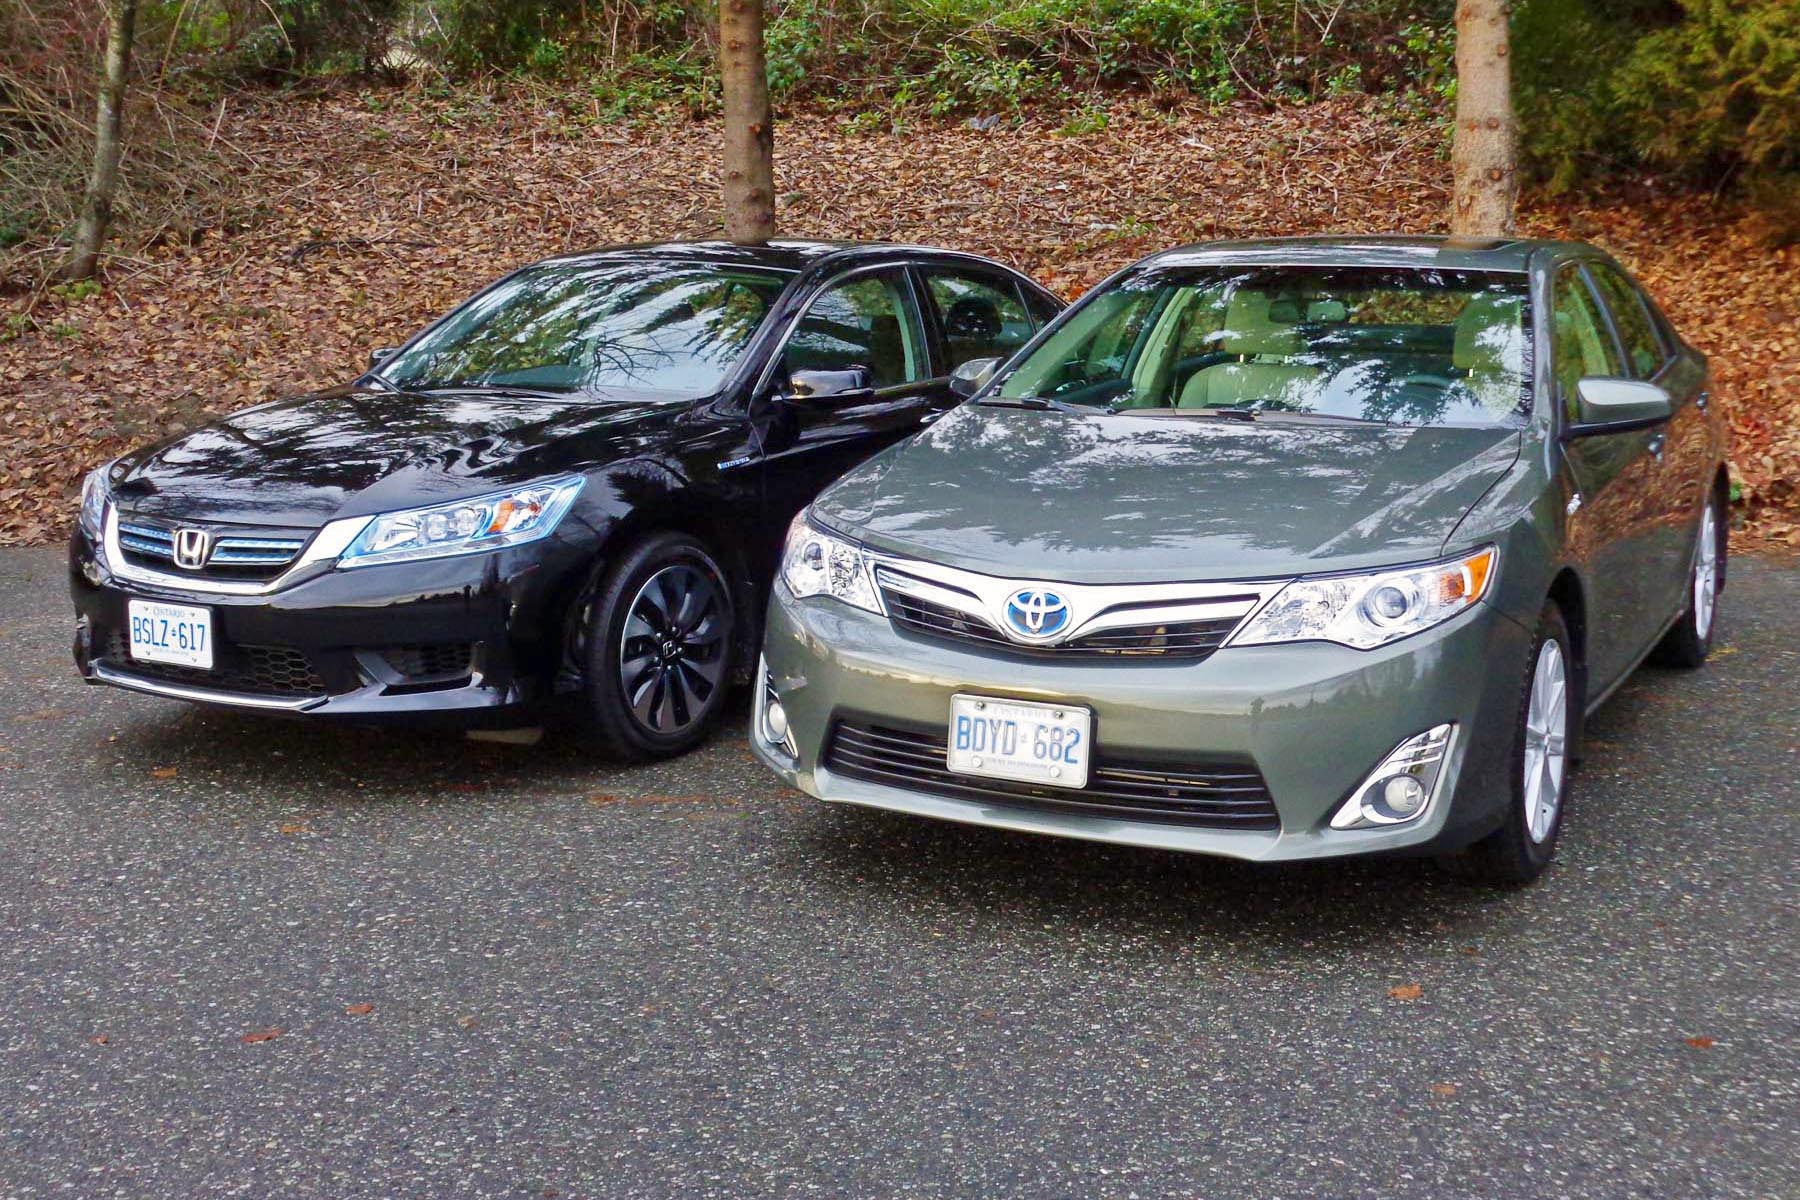 2013 honda accord vs 2012 toyota camry comparison test. Black Bedroom Furniture Sets. Home Design Ideas